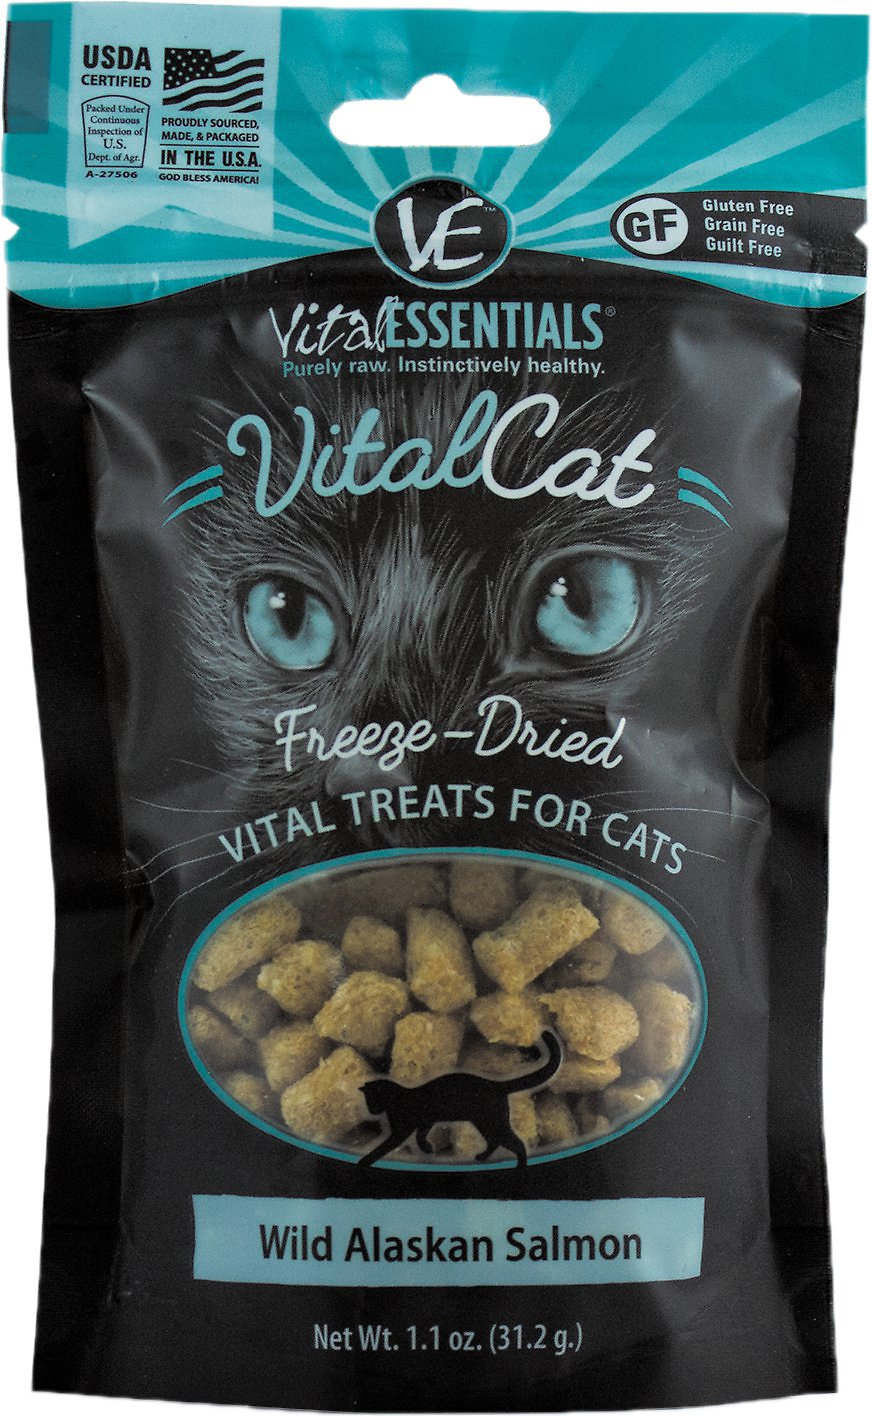 Vital Essentials Vital Cat Treats Wild Alaskan Salmon Freeze-Dried Cat Treats, 1.1-oz bag